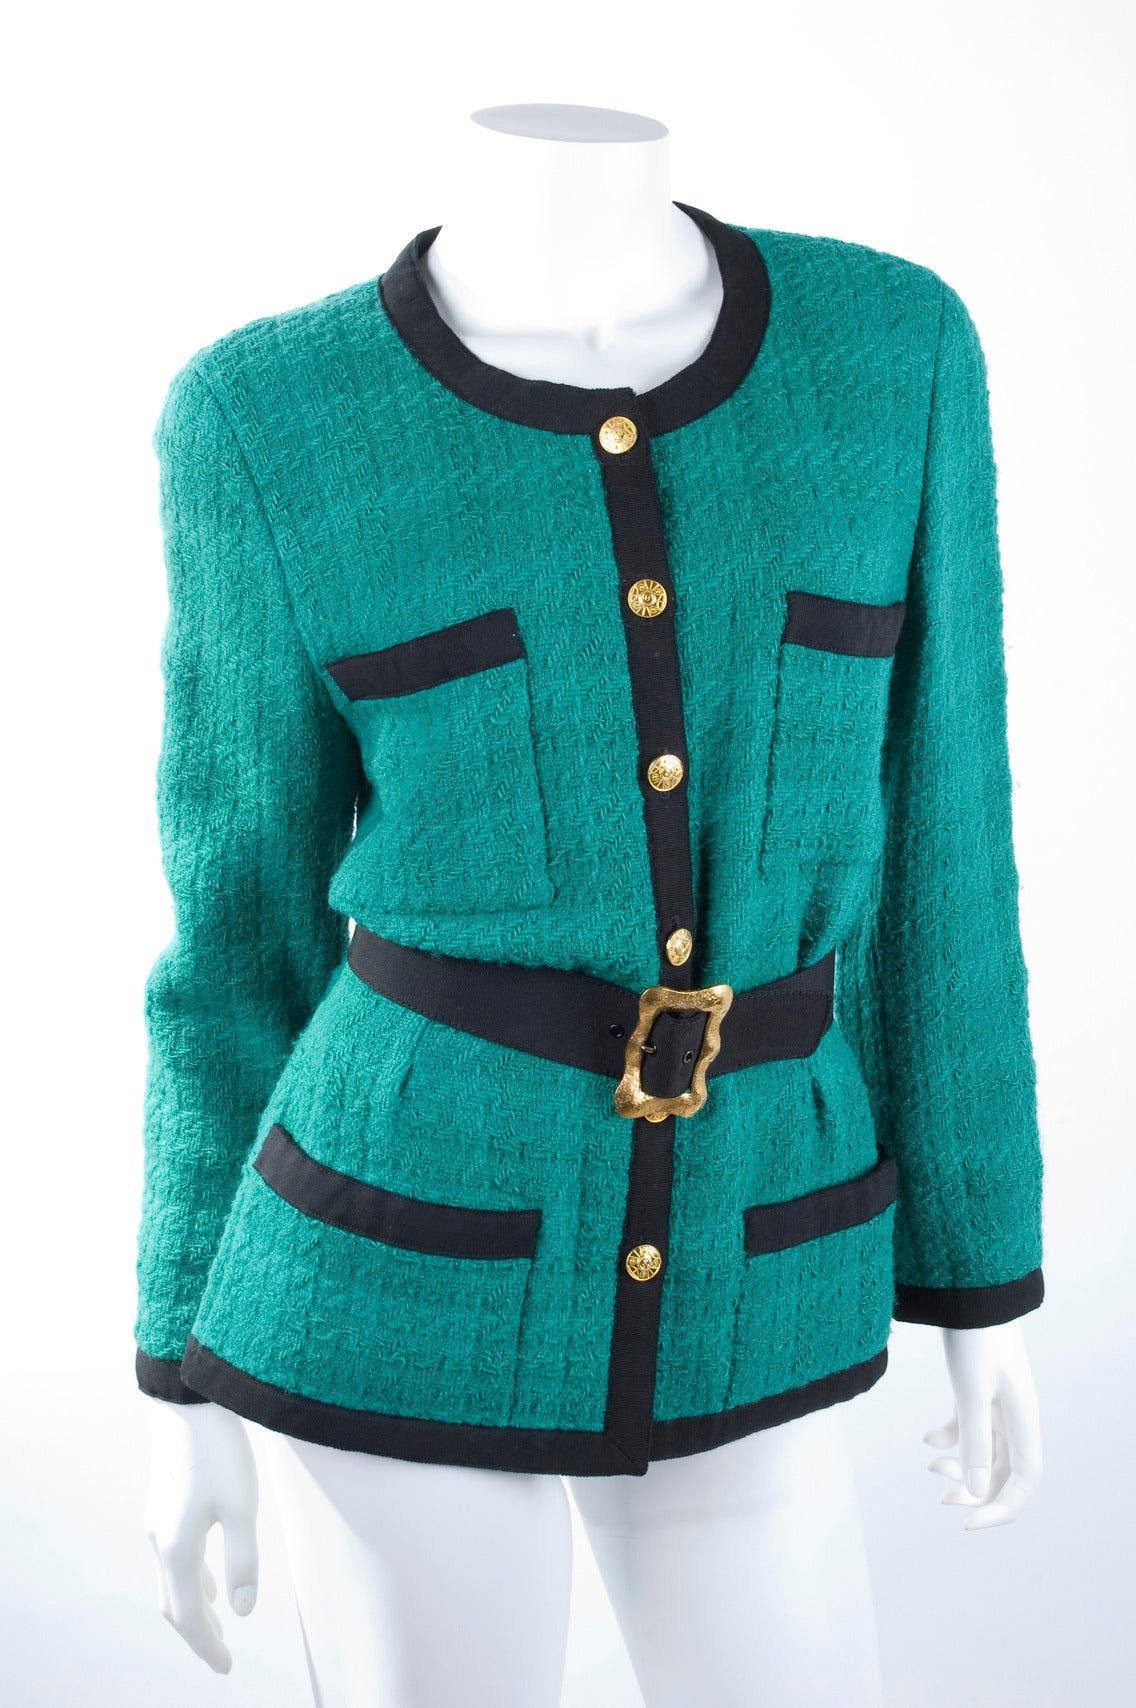 Chanel Jacket with Belt 4